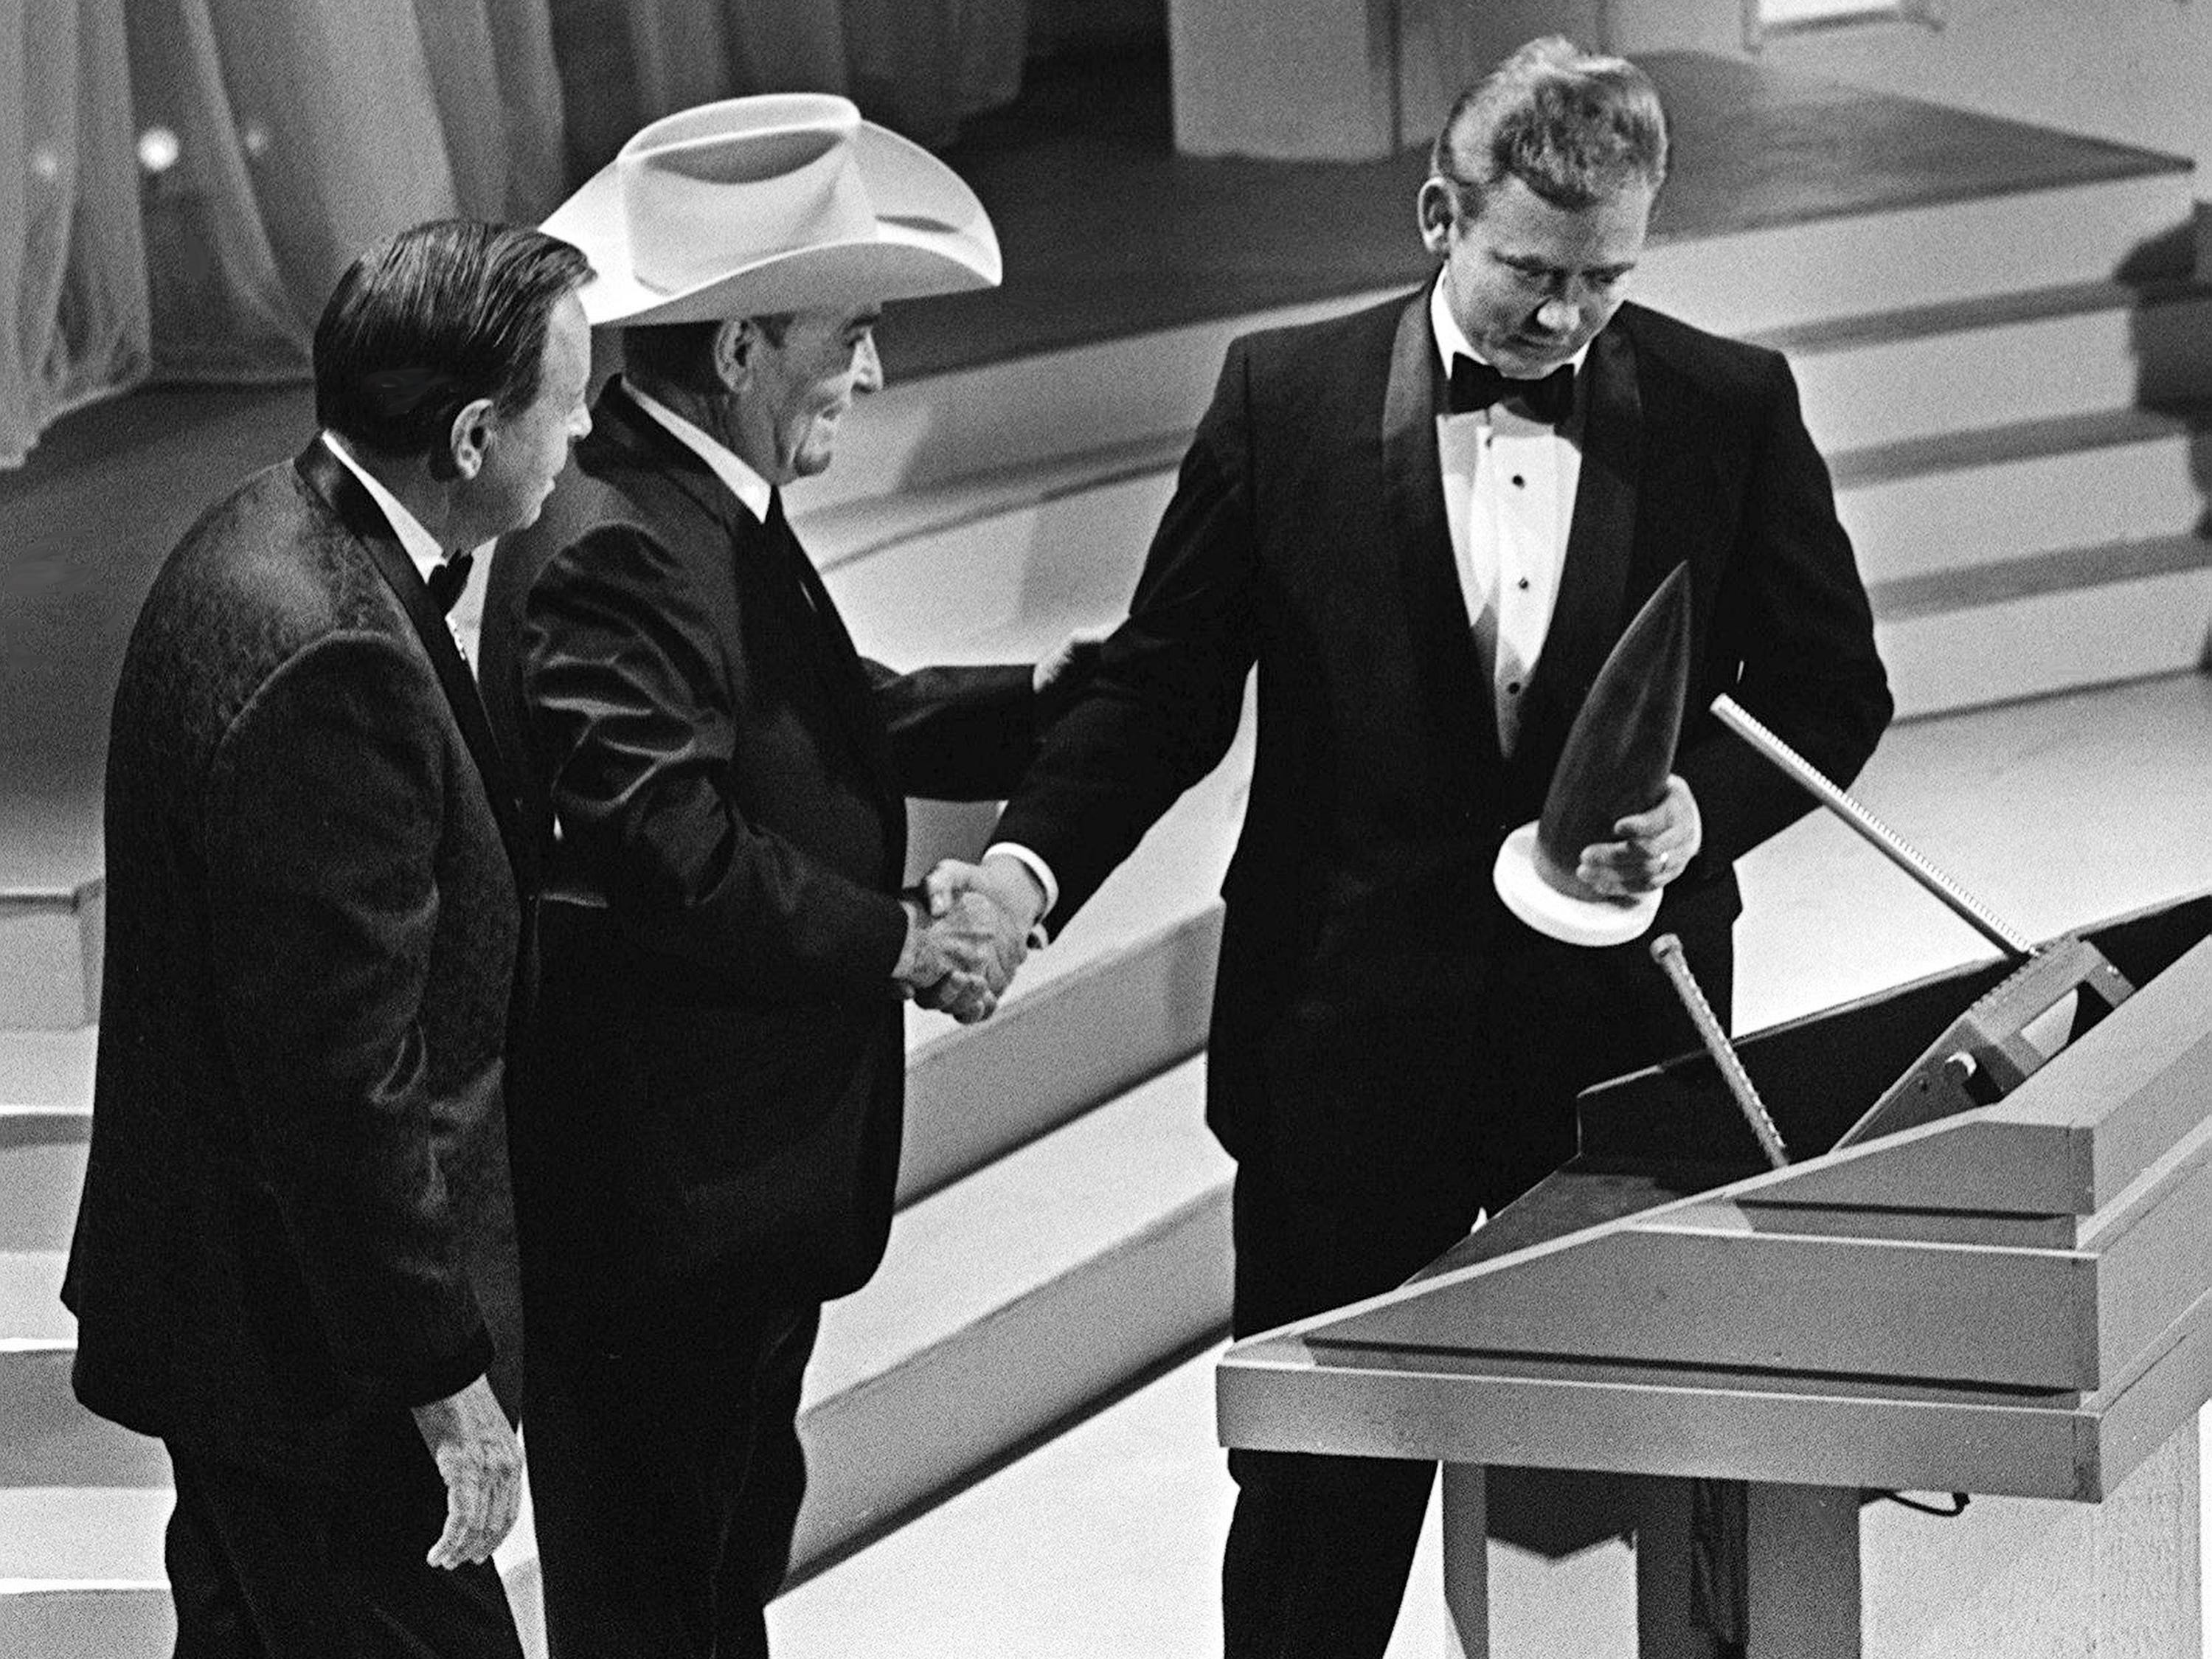 """Songwriter Bobby Russell, right, accepts his Song of the Year award from presenters Jimmie Davis and Bob Wills for """"Honey"""" during the second annual CMA Awards show at the Ryman Auditorium on Oct. 18, 1968."""